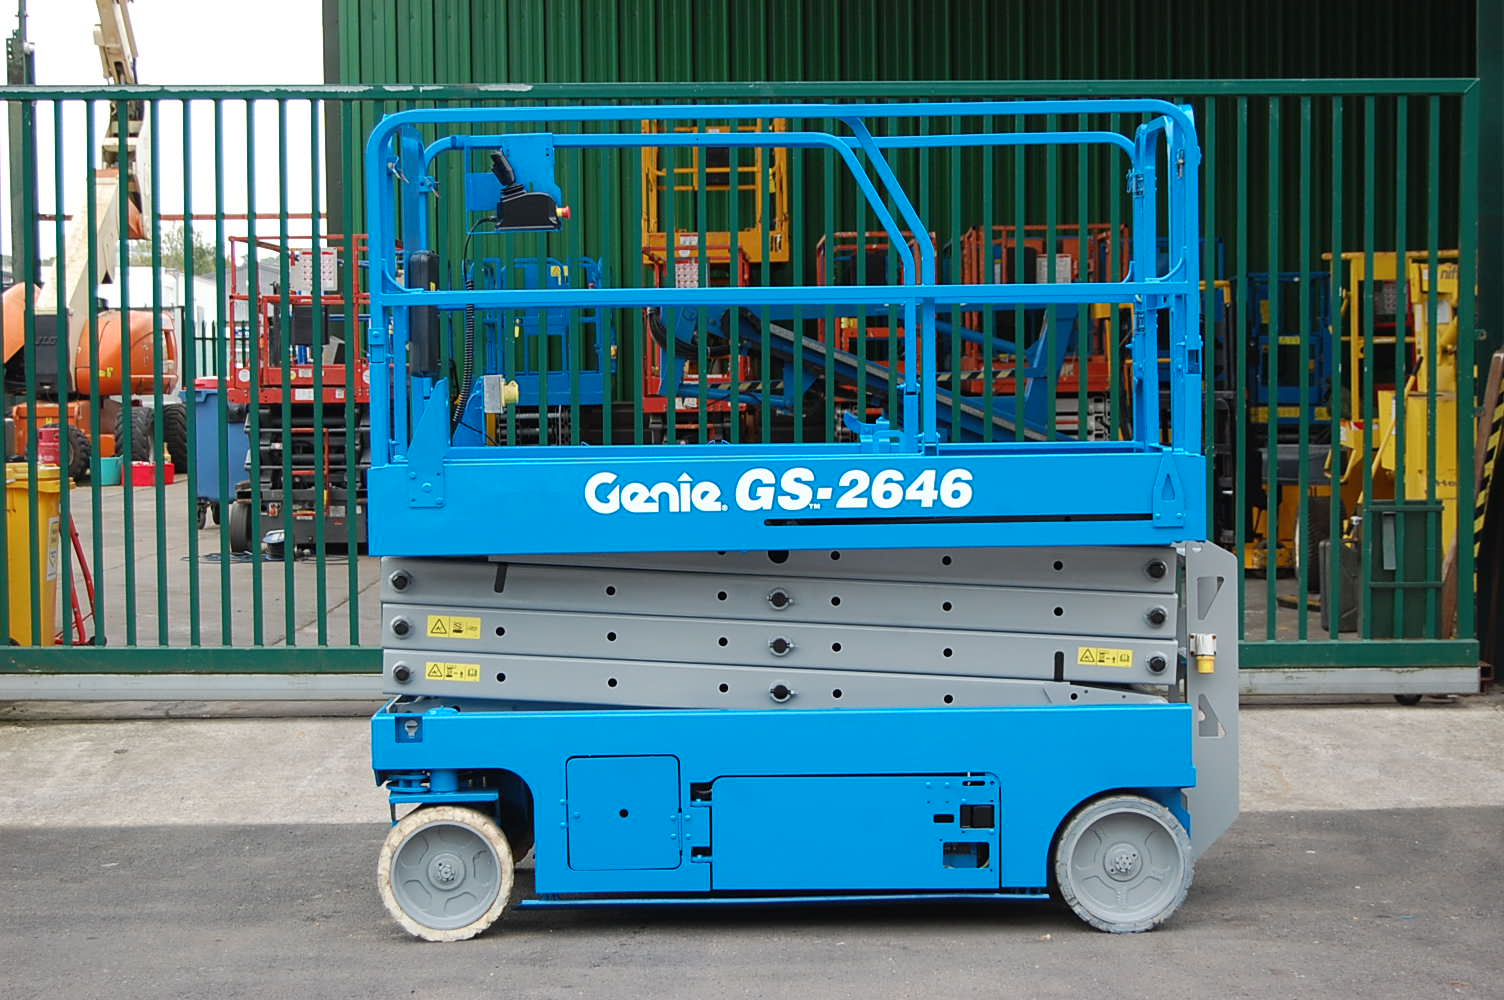 2007 Genie 2646 Electric Scissor Lift 10m